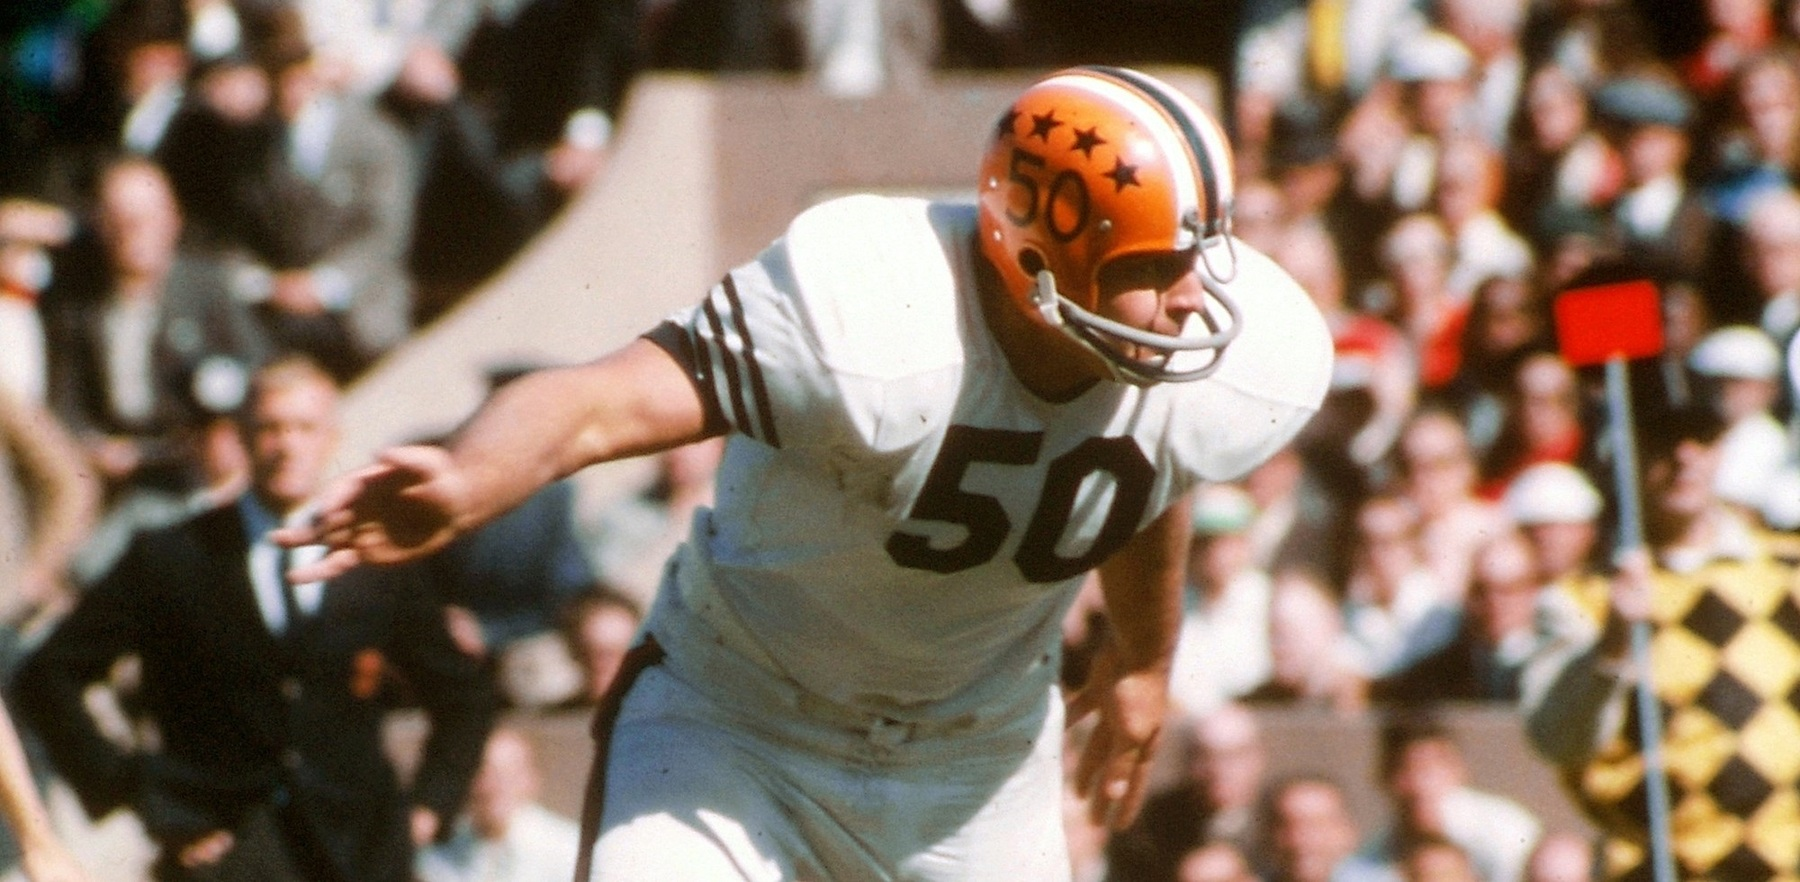 Dick Butkus playing for the Fighting Illini